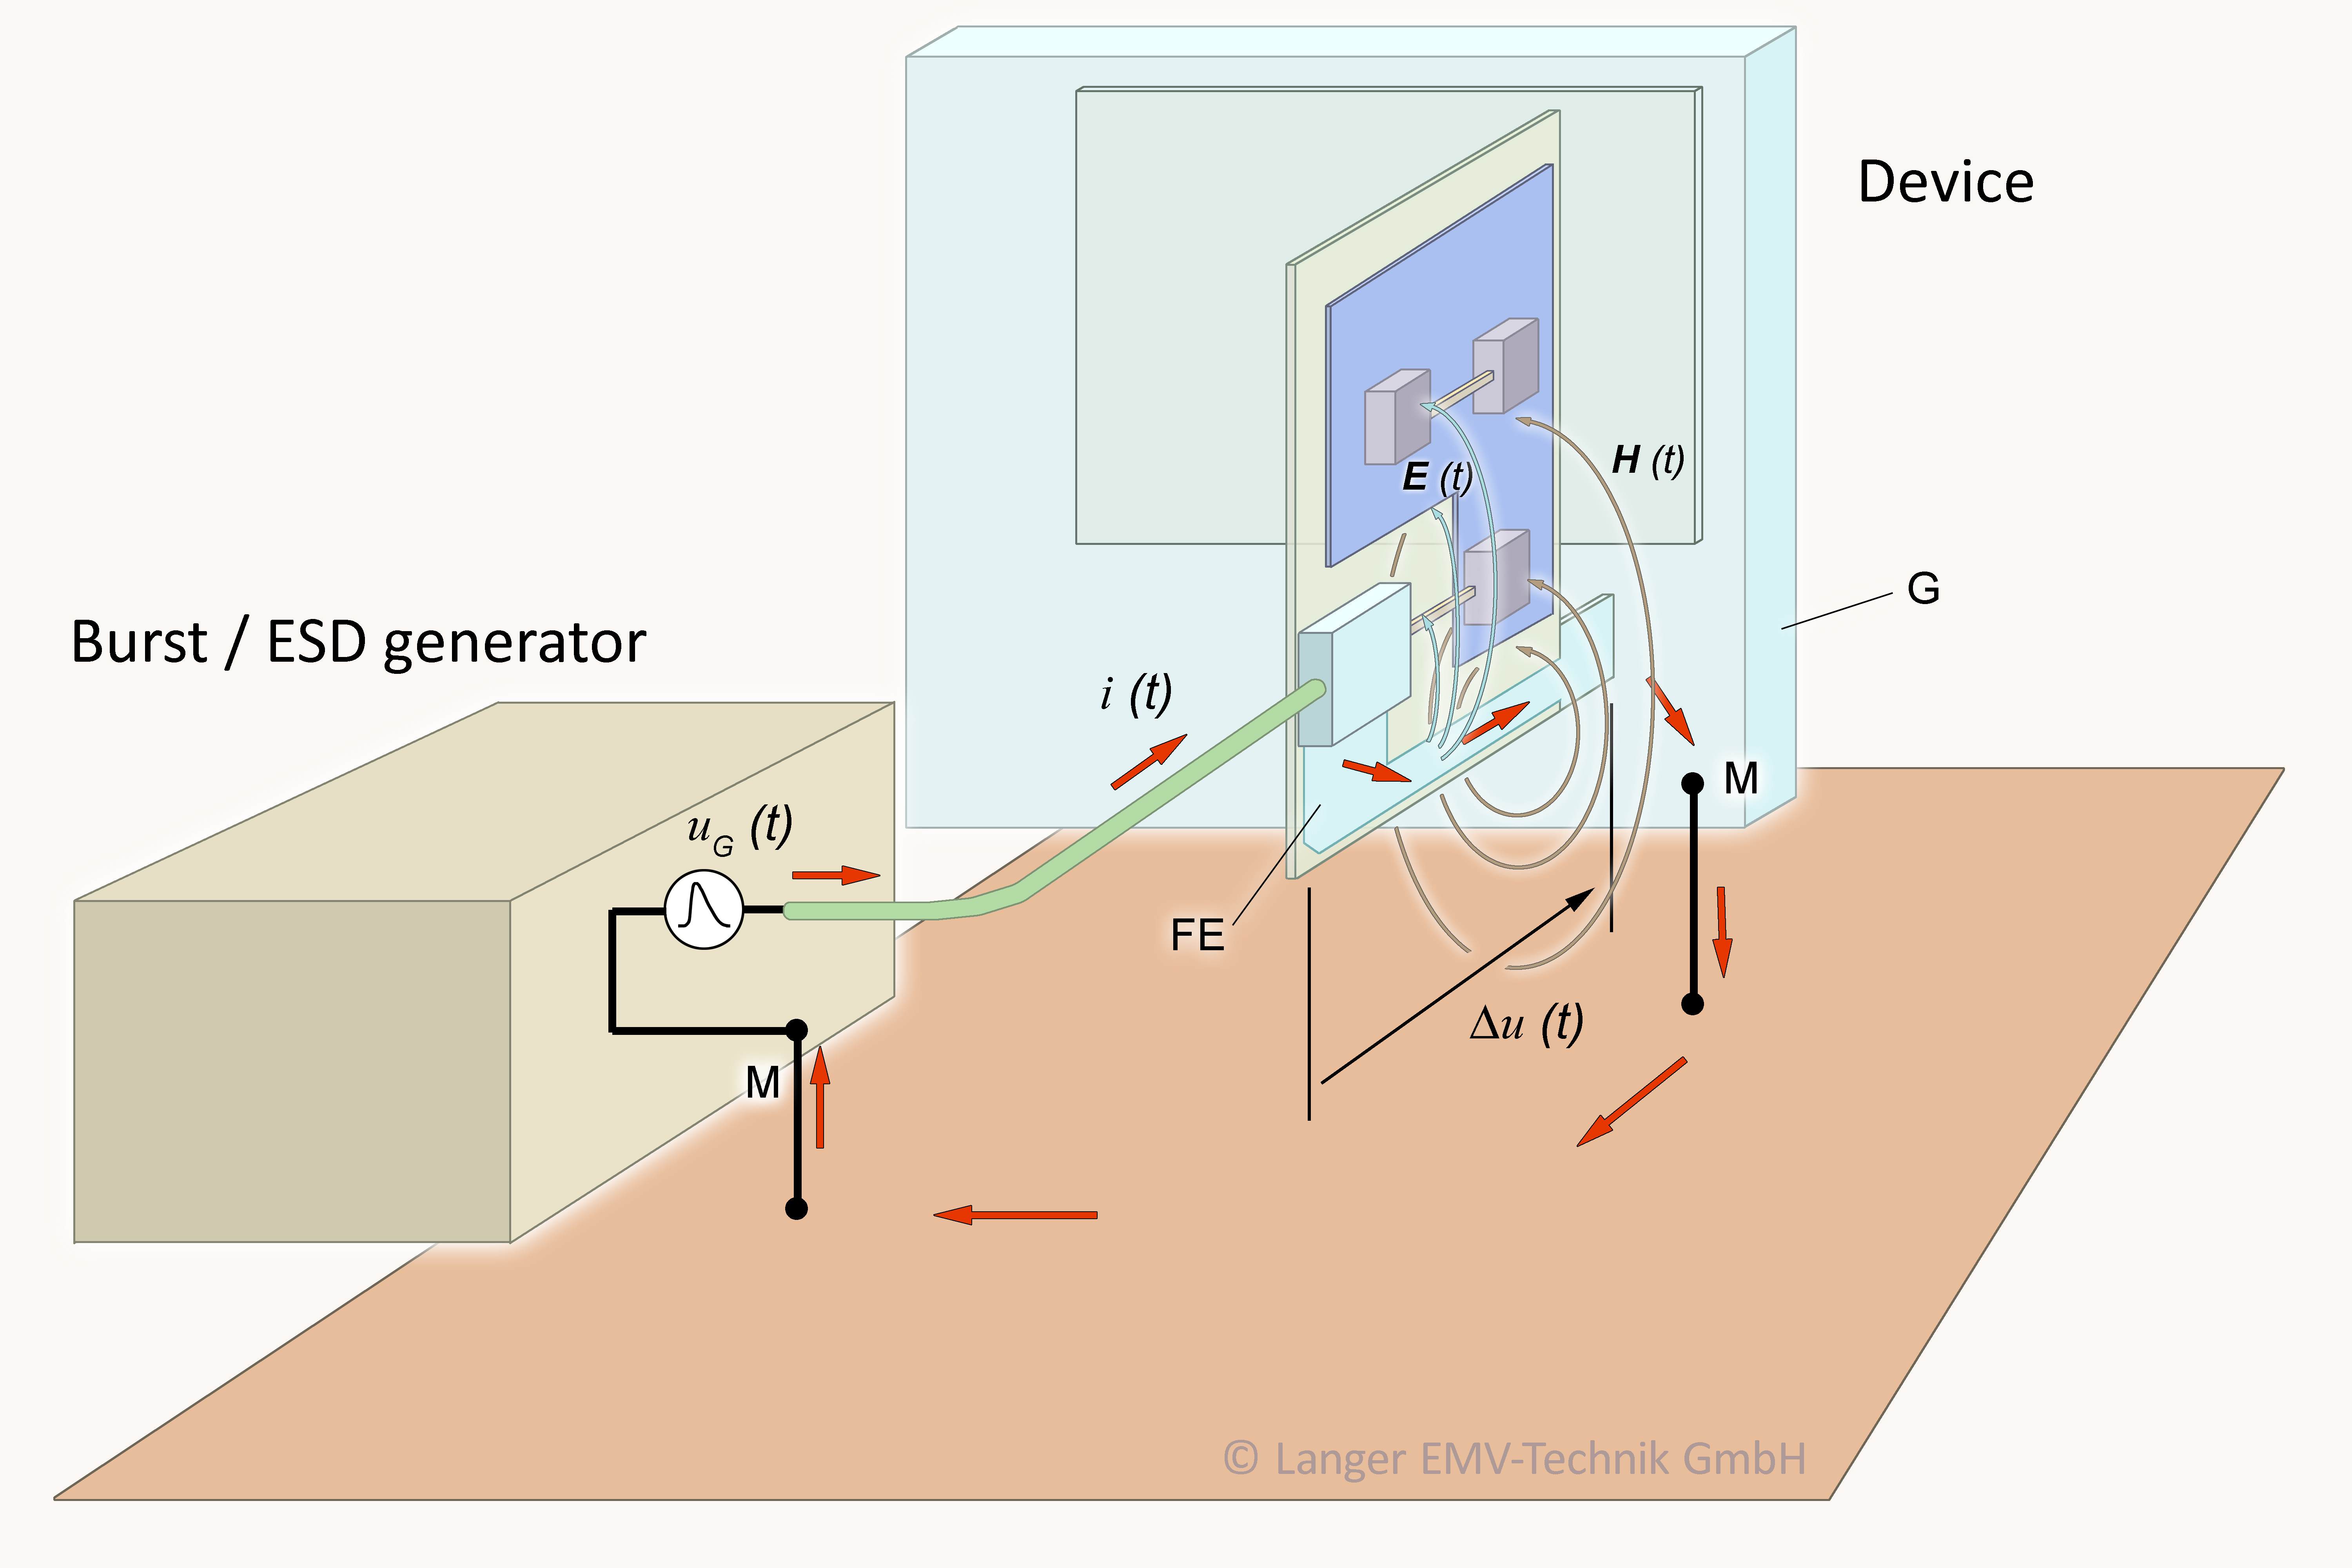 Figure1: Effect of a burst or ESD disturbance on an electronic board.